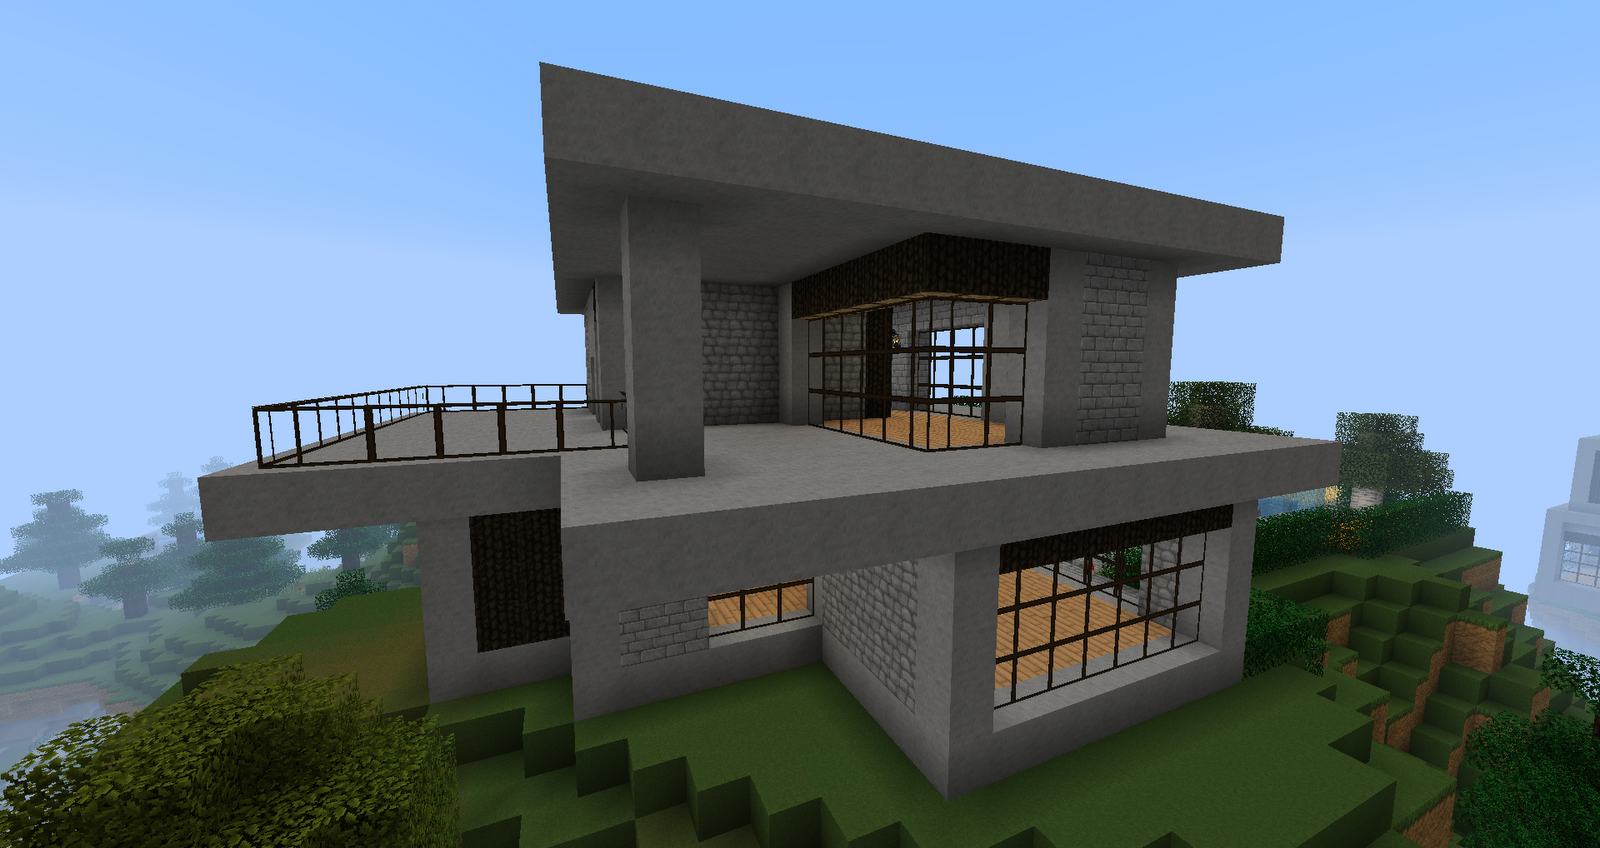 Ruked on minecraft modern house schematics 02 small - Modern house minecraft ...